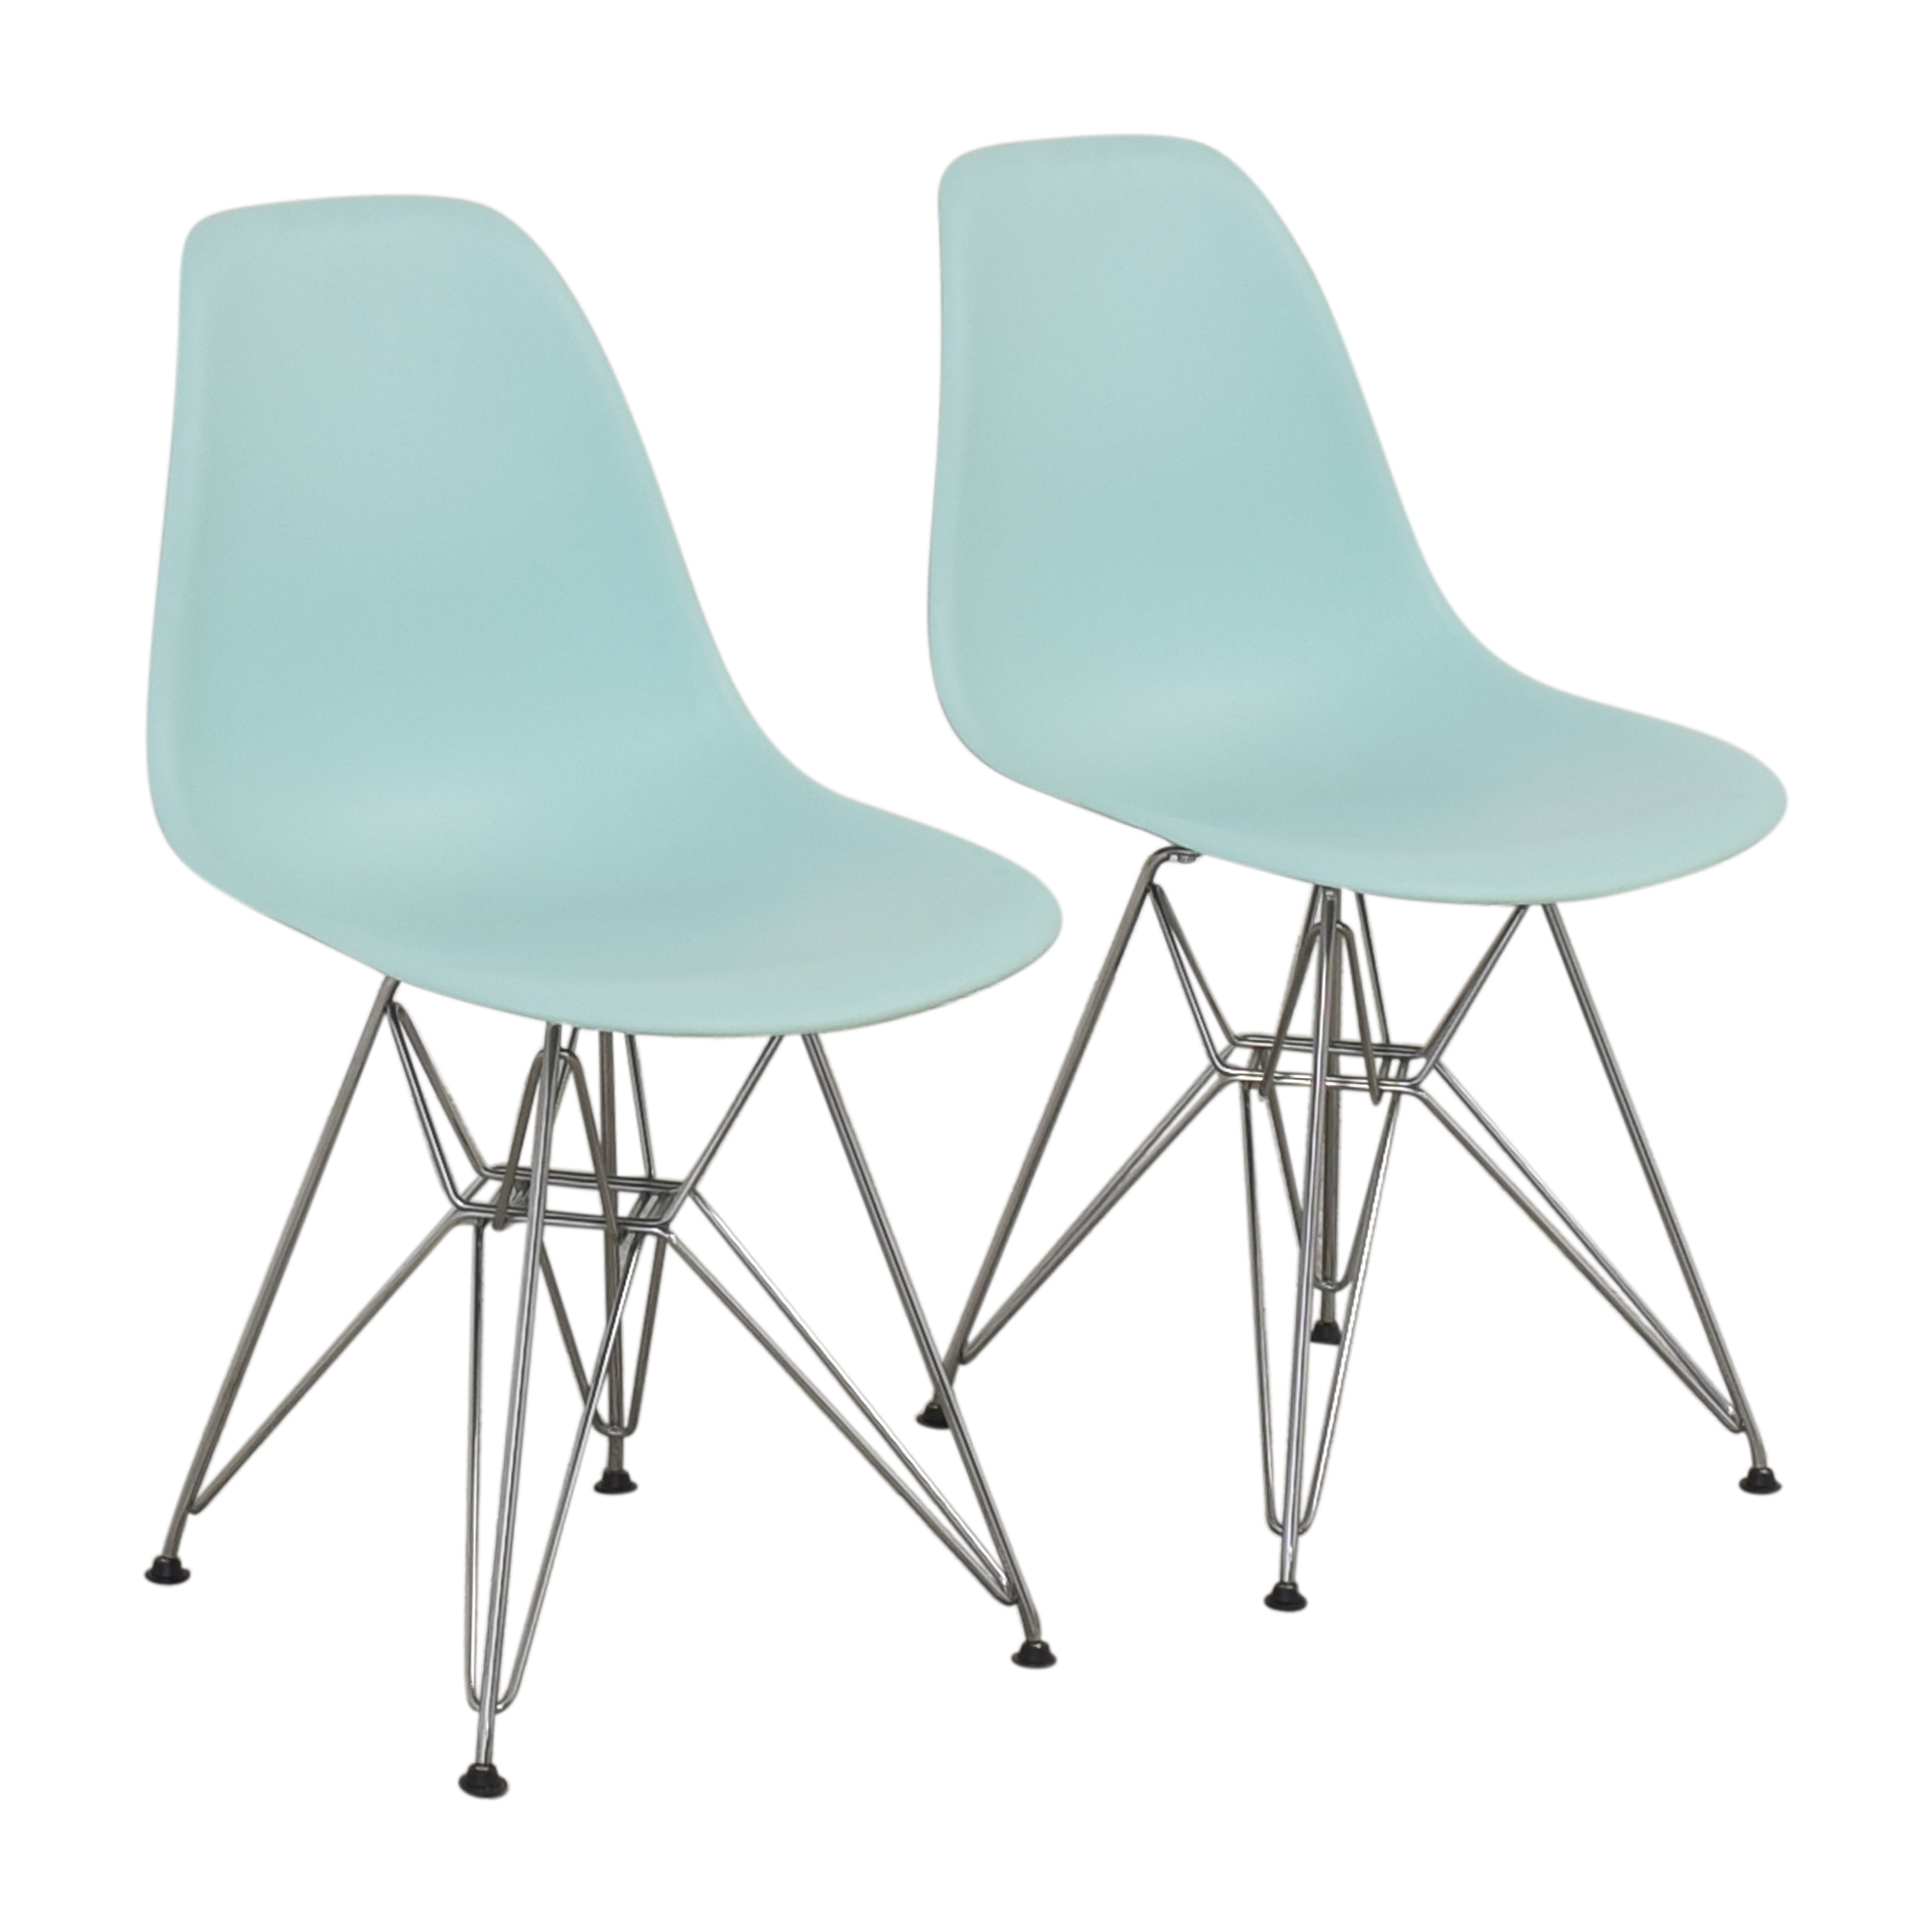 Herman Miller Herman Miller Eames Molded Plastic Wire-Base Side Chairs on sale